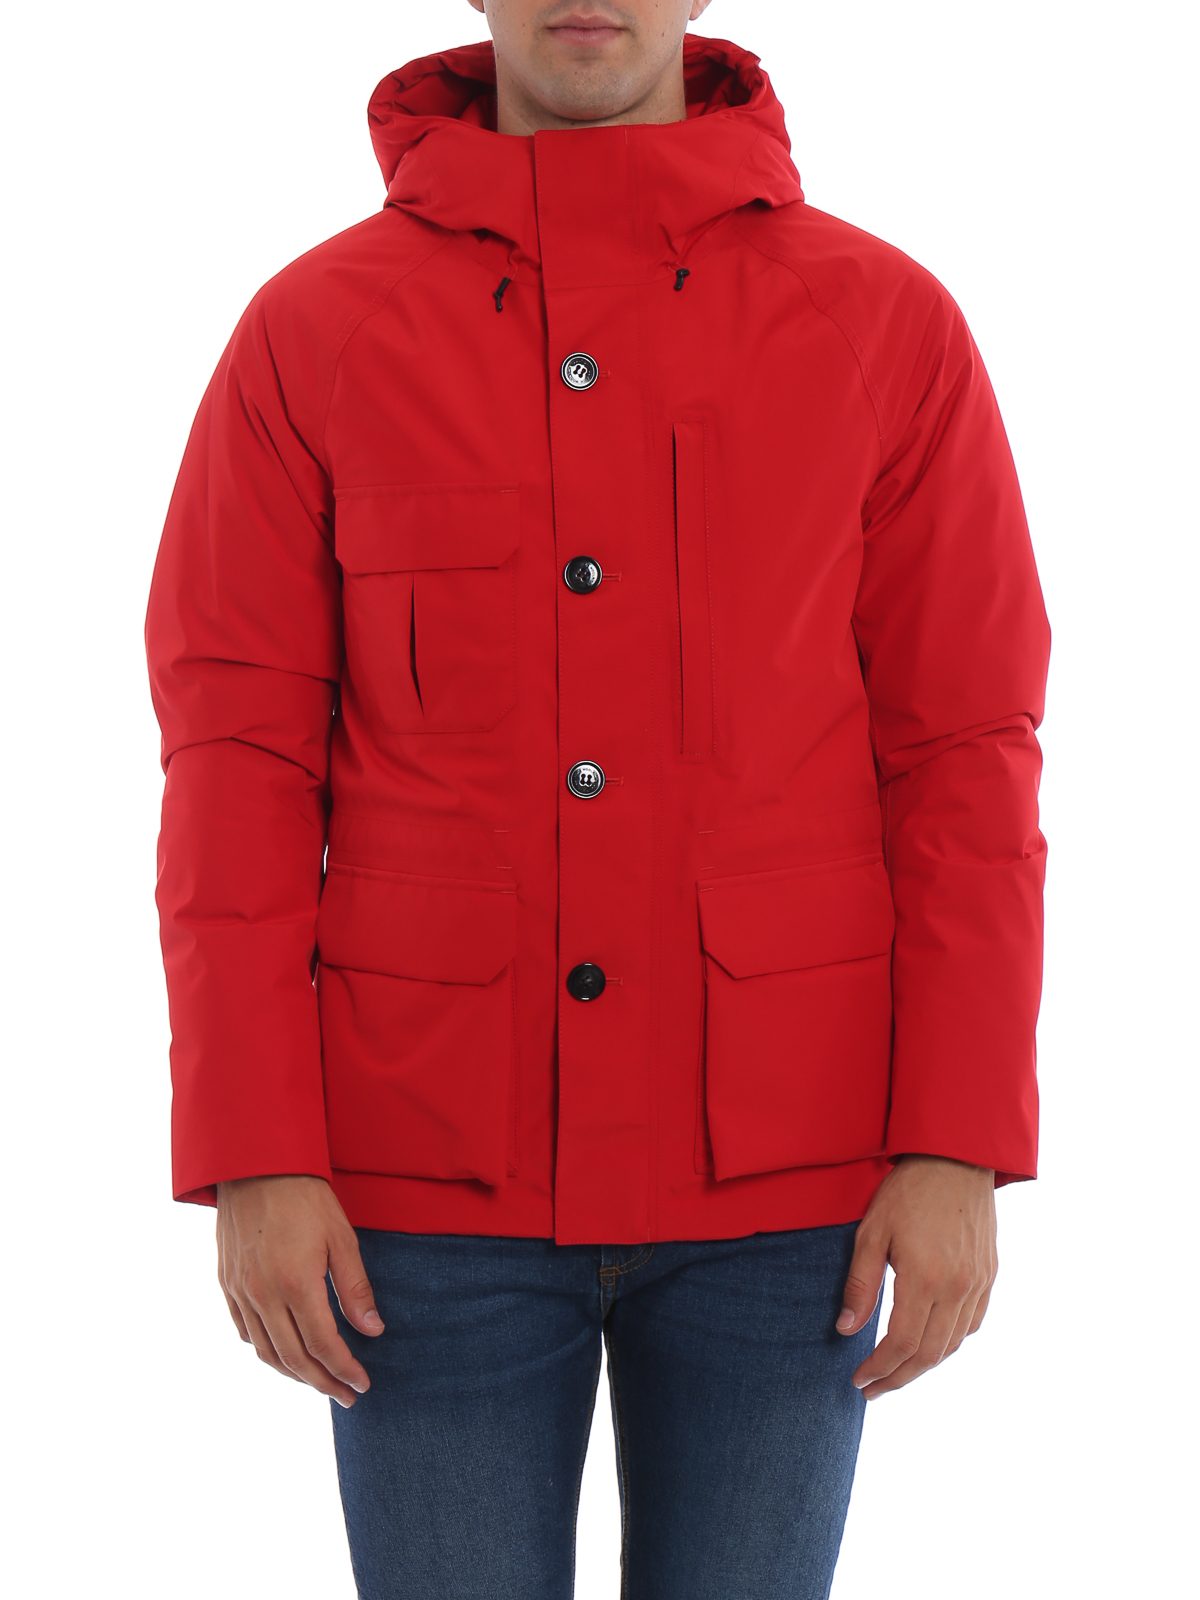 tessuto giacche Woolrich Goretex rosso in Giaccone Mountain x4RBn6C